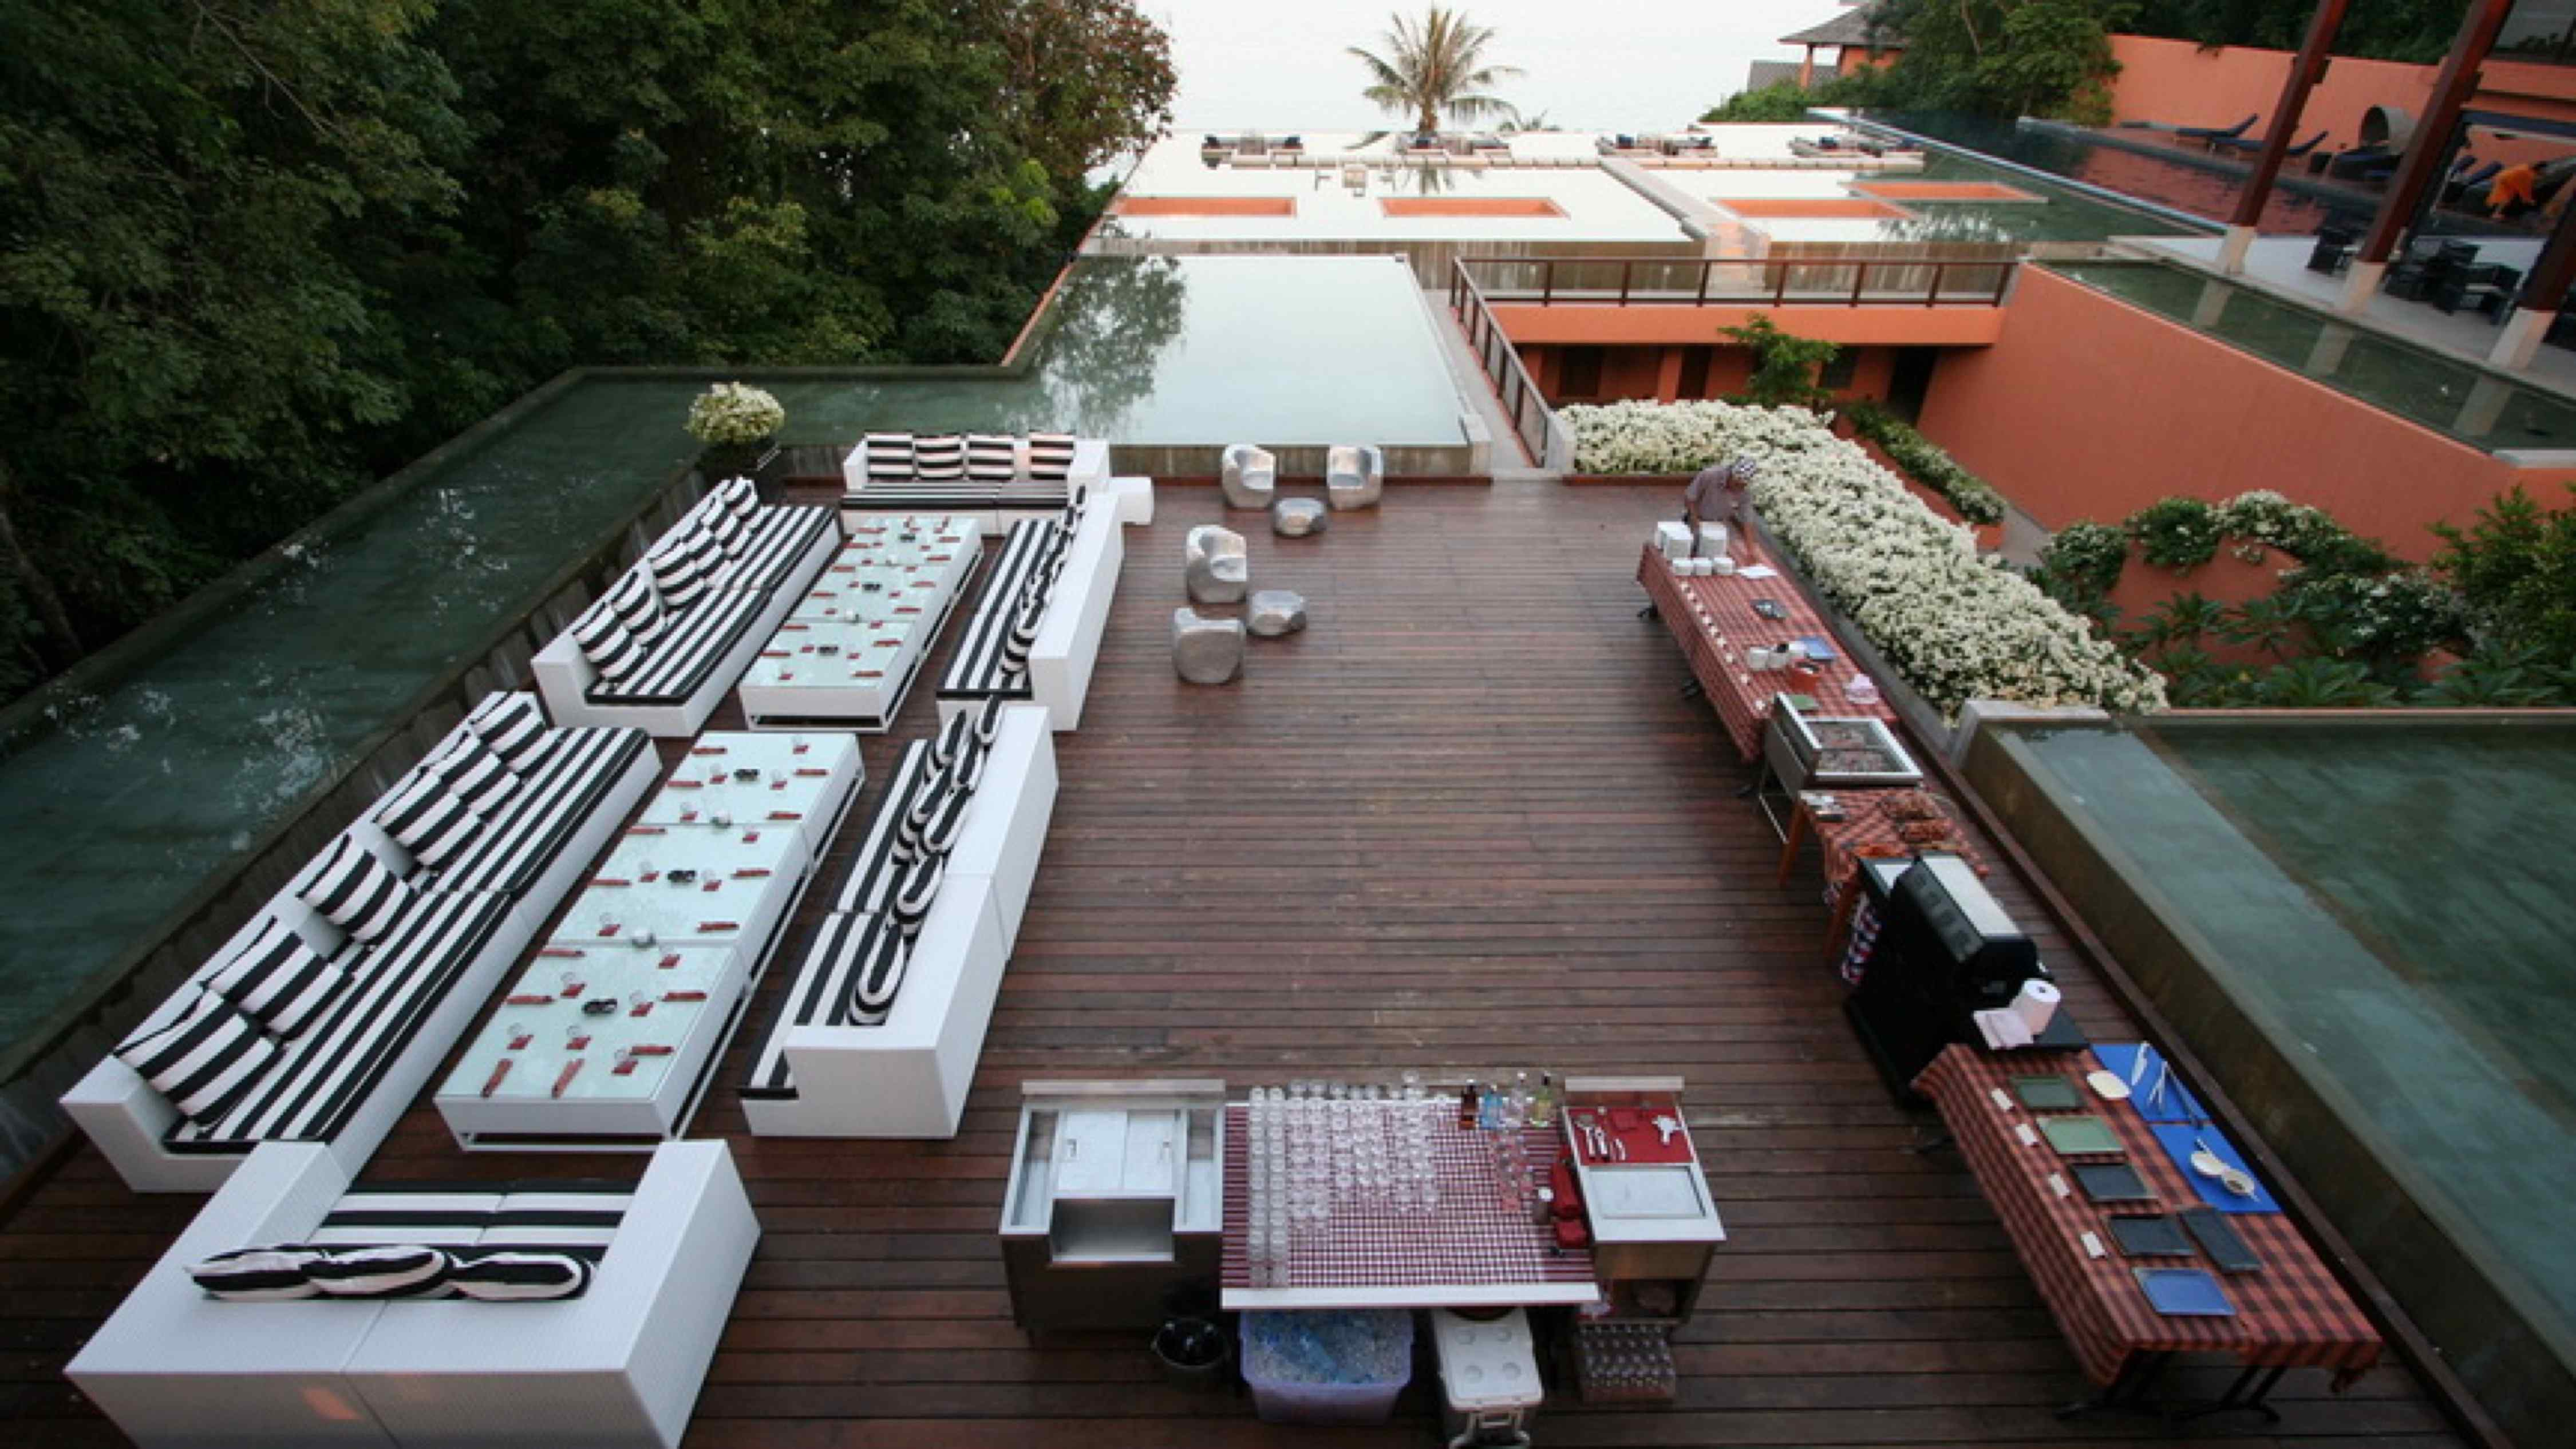 Phuket-Events-CocaCola-Sri-Panwa-Phuket-Meeting-Events-Hotel-Luxury